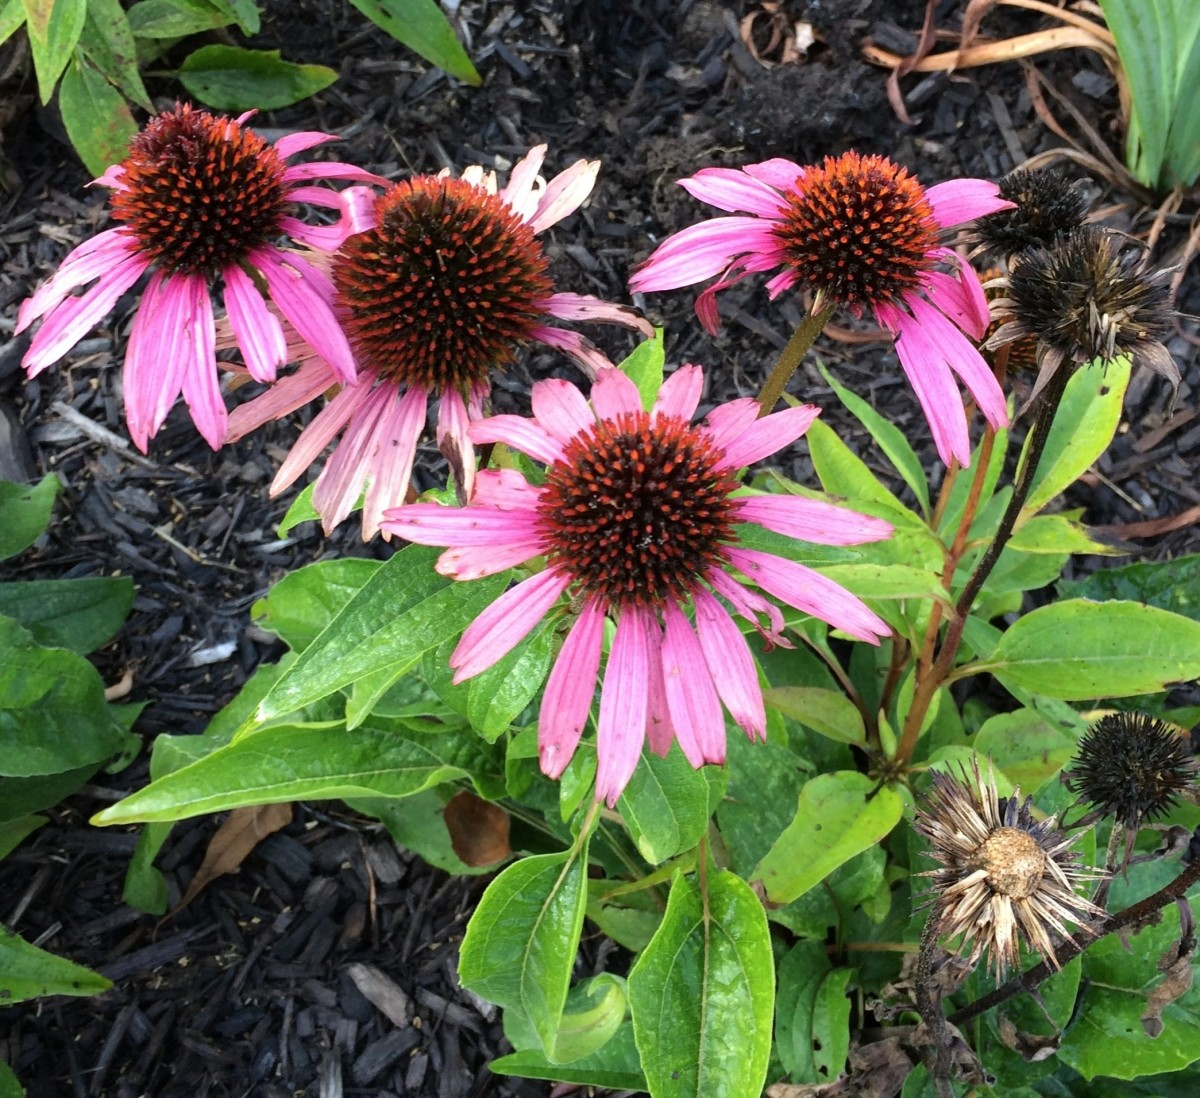 Purple Coneflower starts to go to seed as seen in lower right.